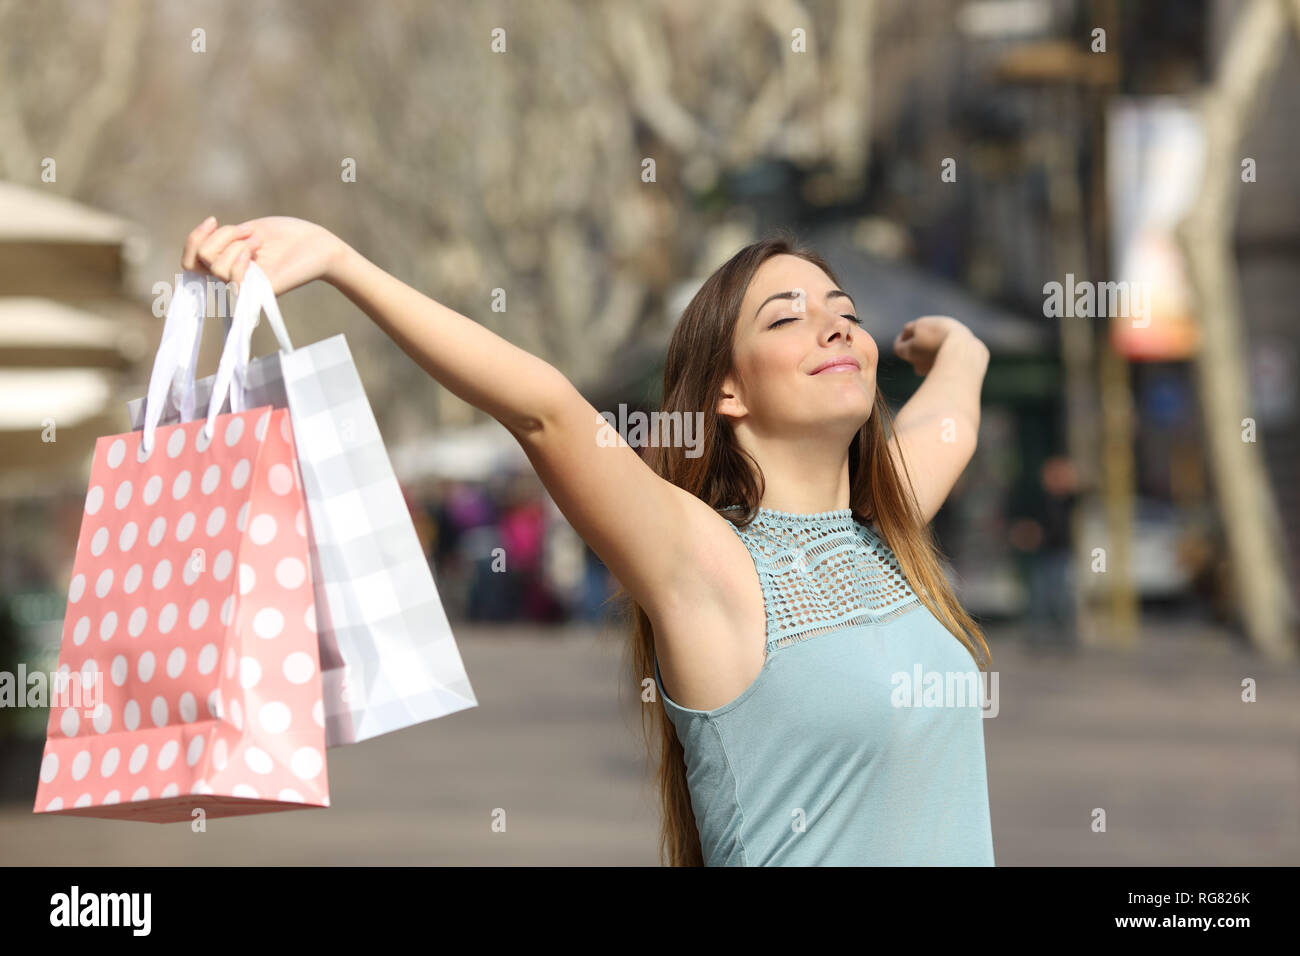 Shopper holding shopping bags raising arms in a city street - Stock Image